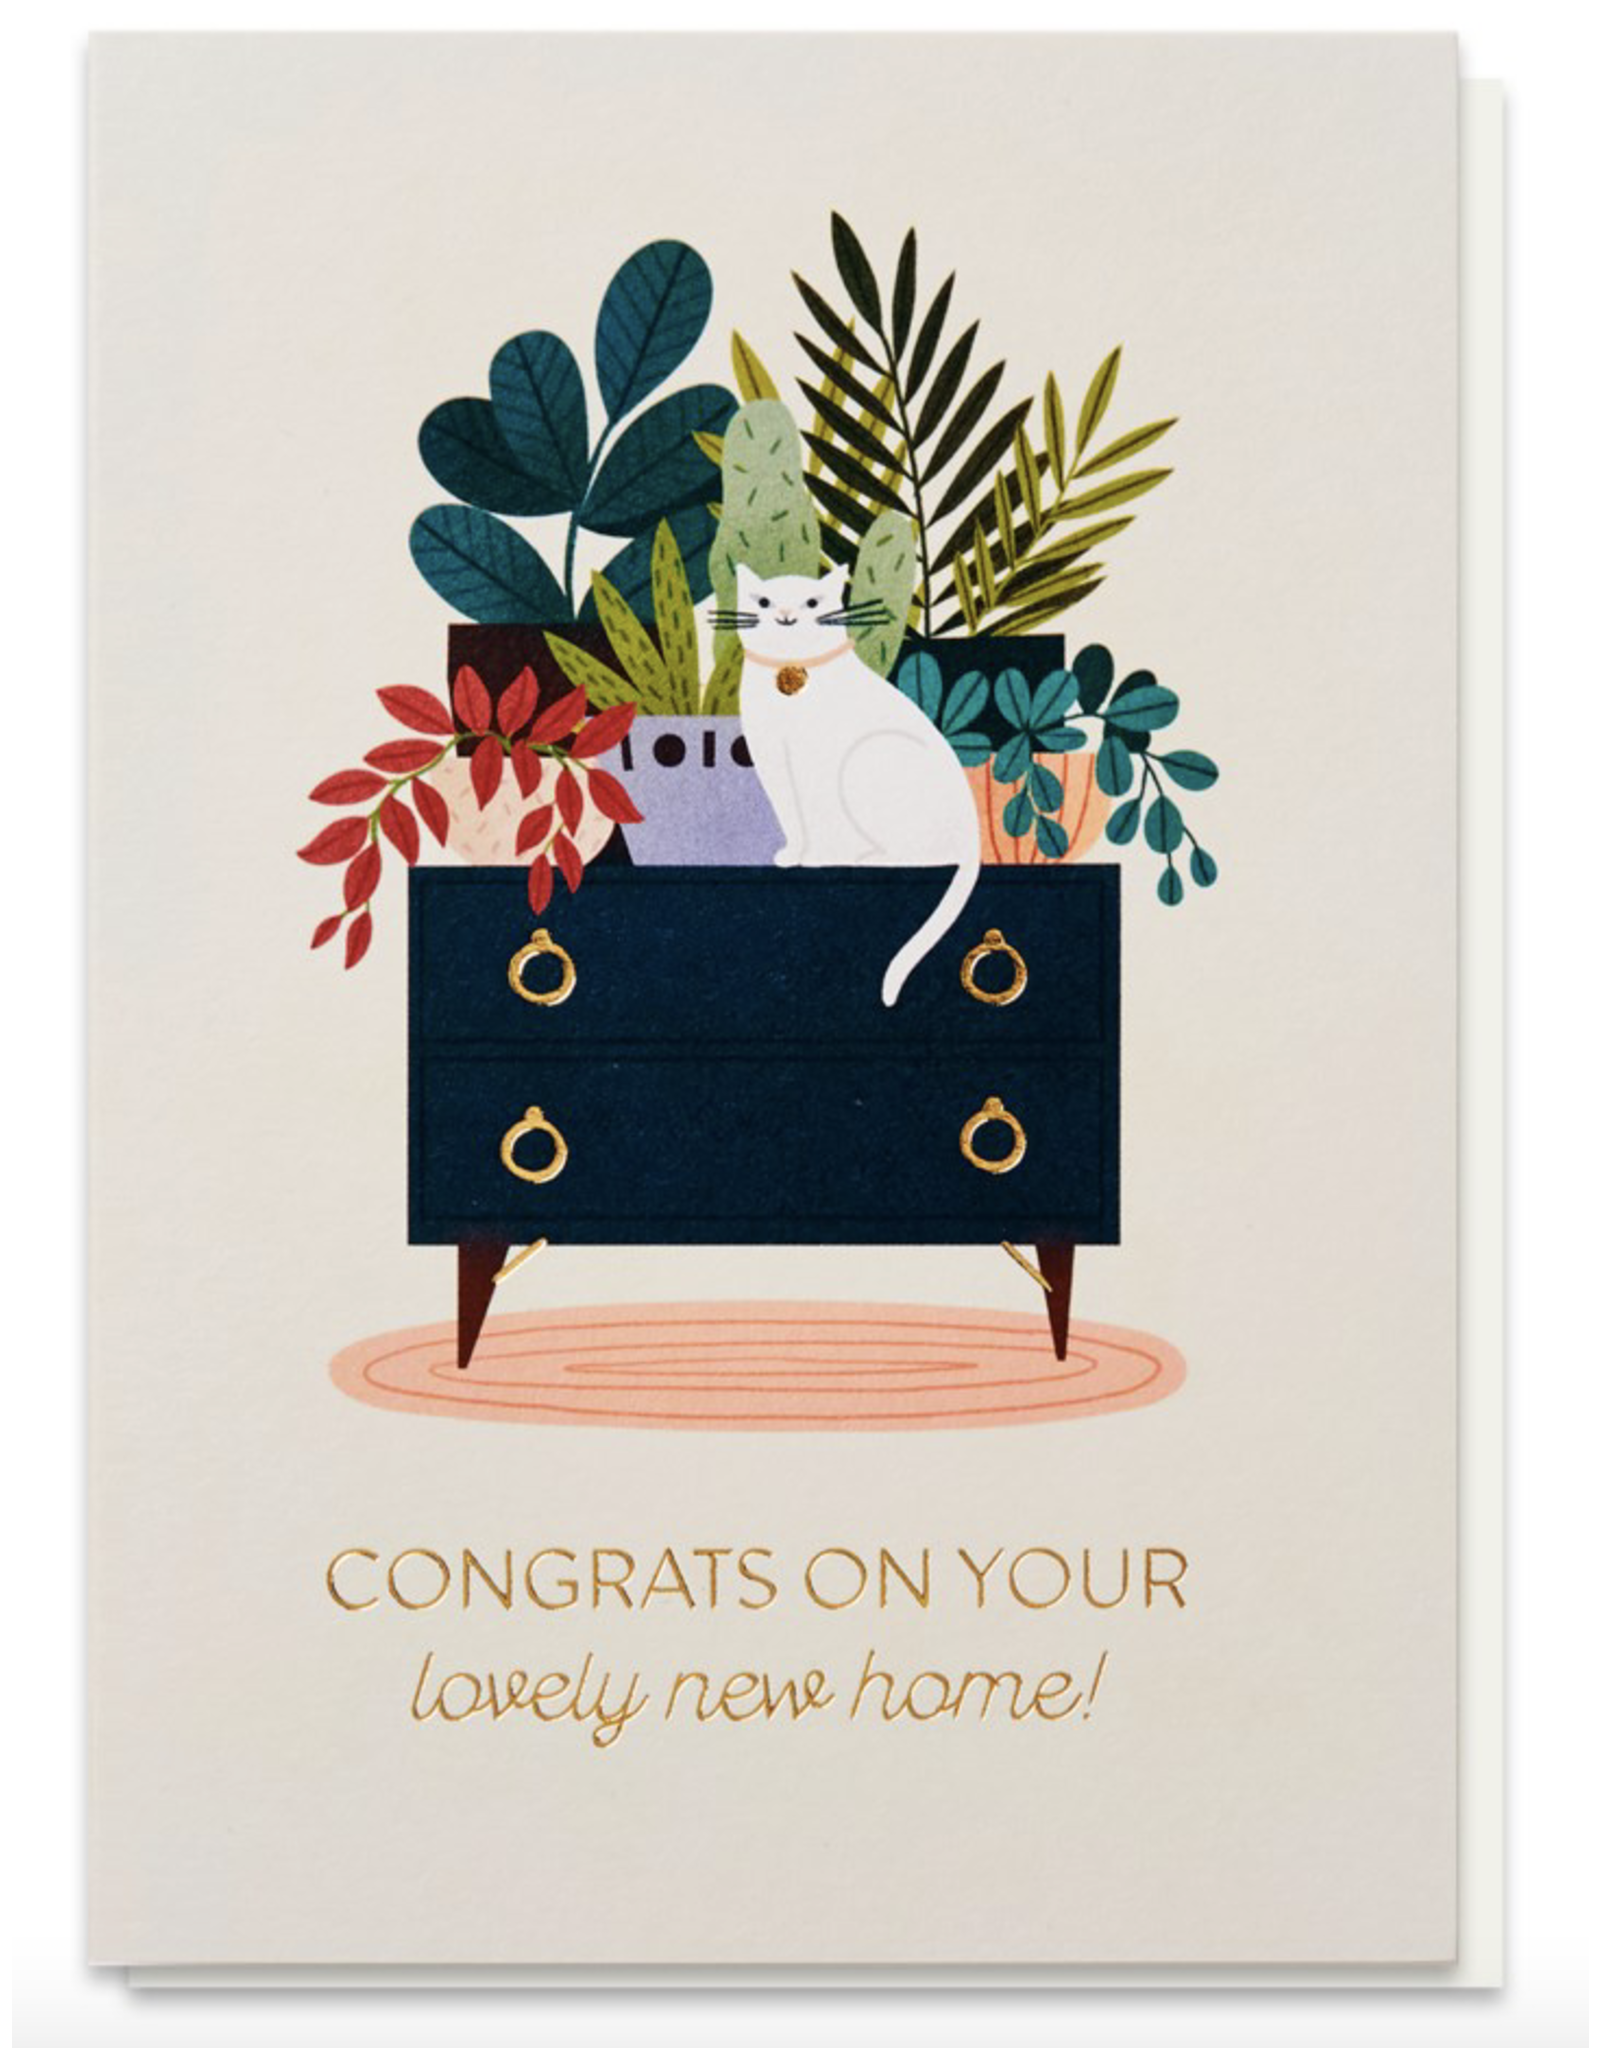 New Home - Congrats on Your Lovely New Home